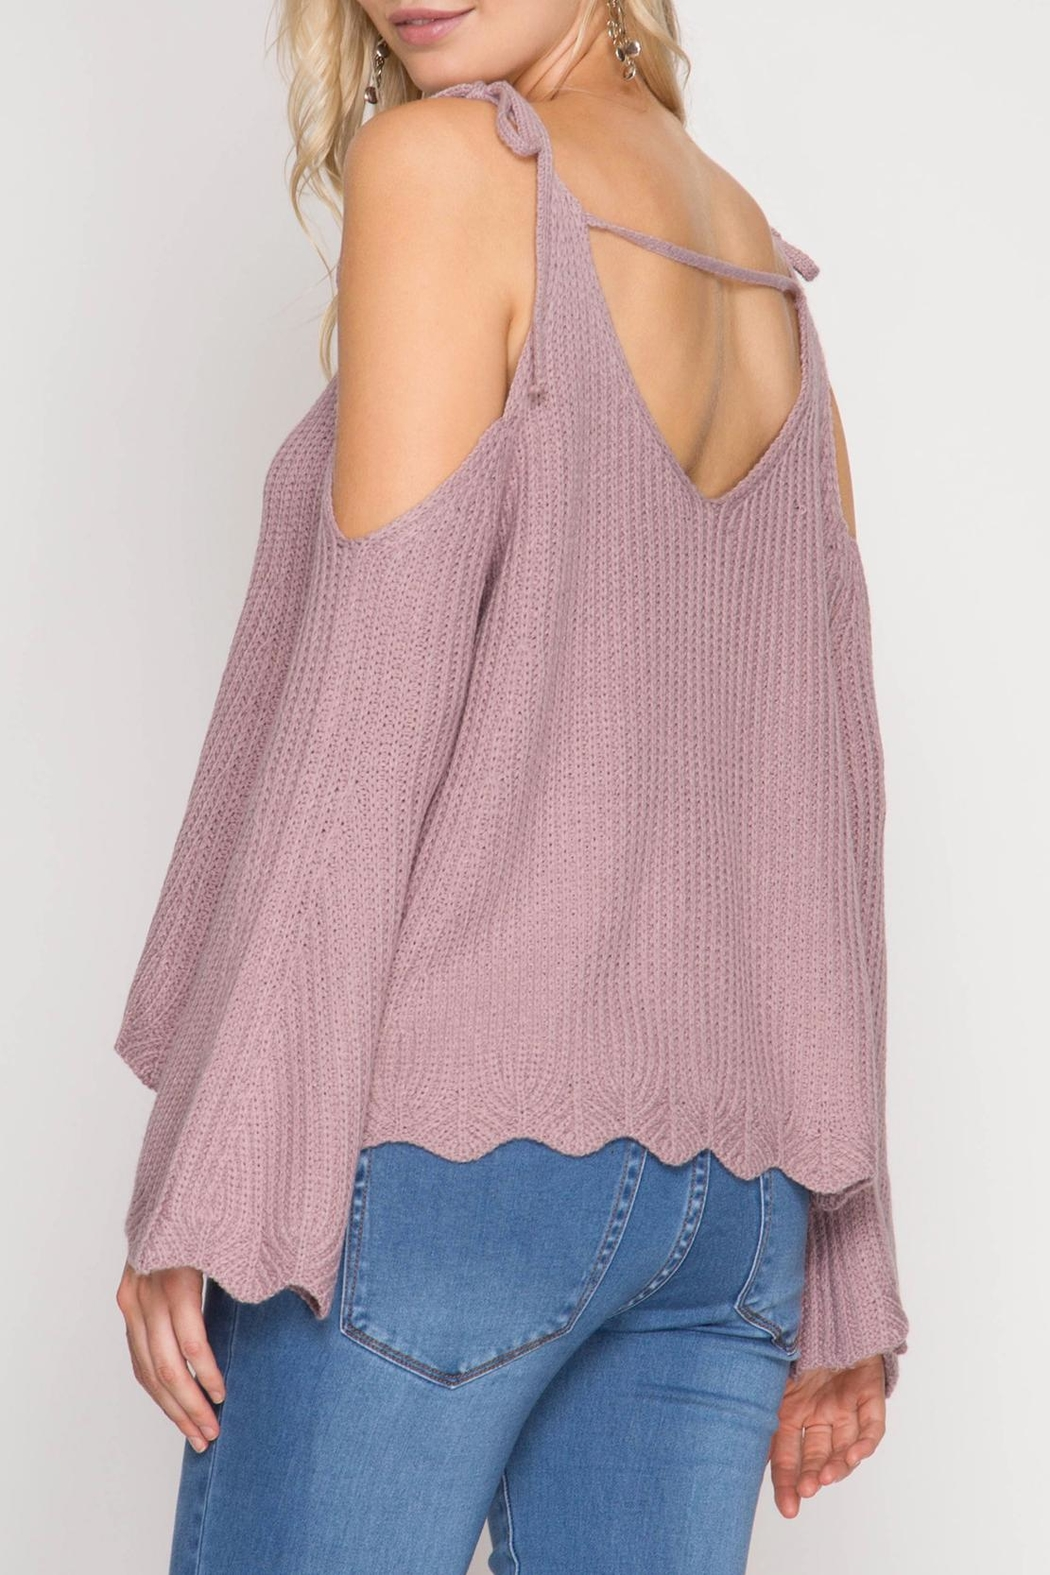 She + Sky Scallop Detail Sweater - Front Full Image